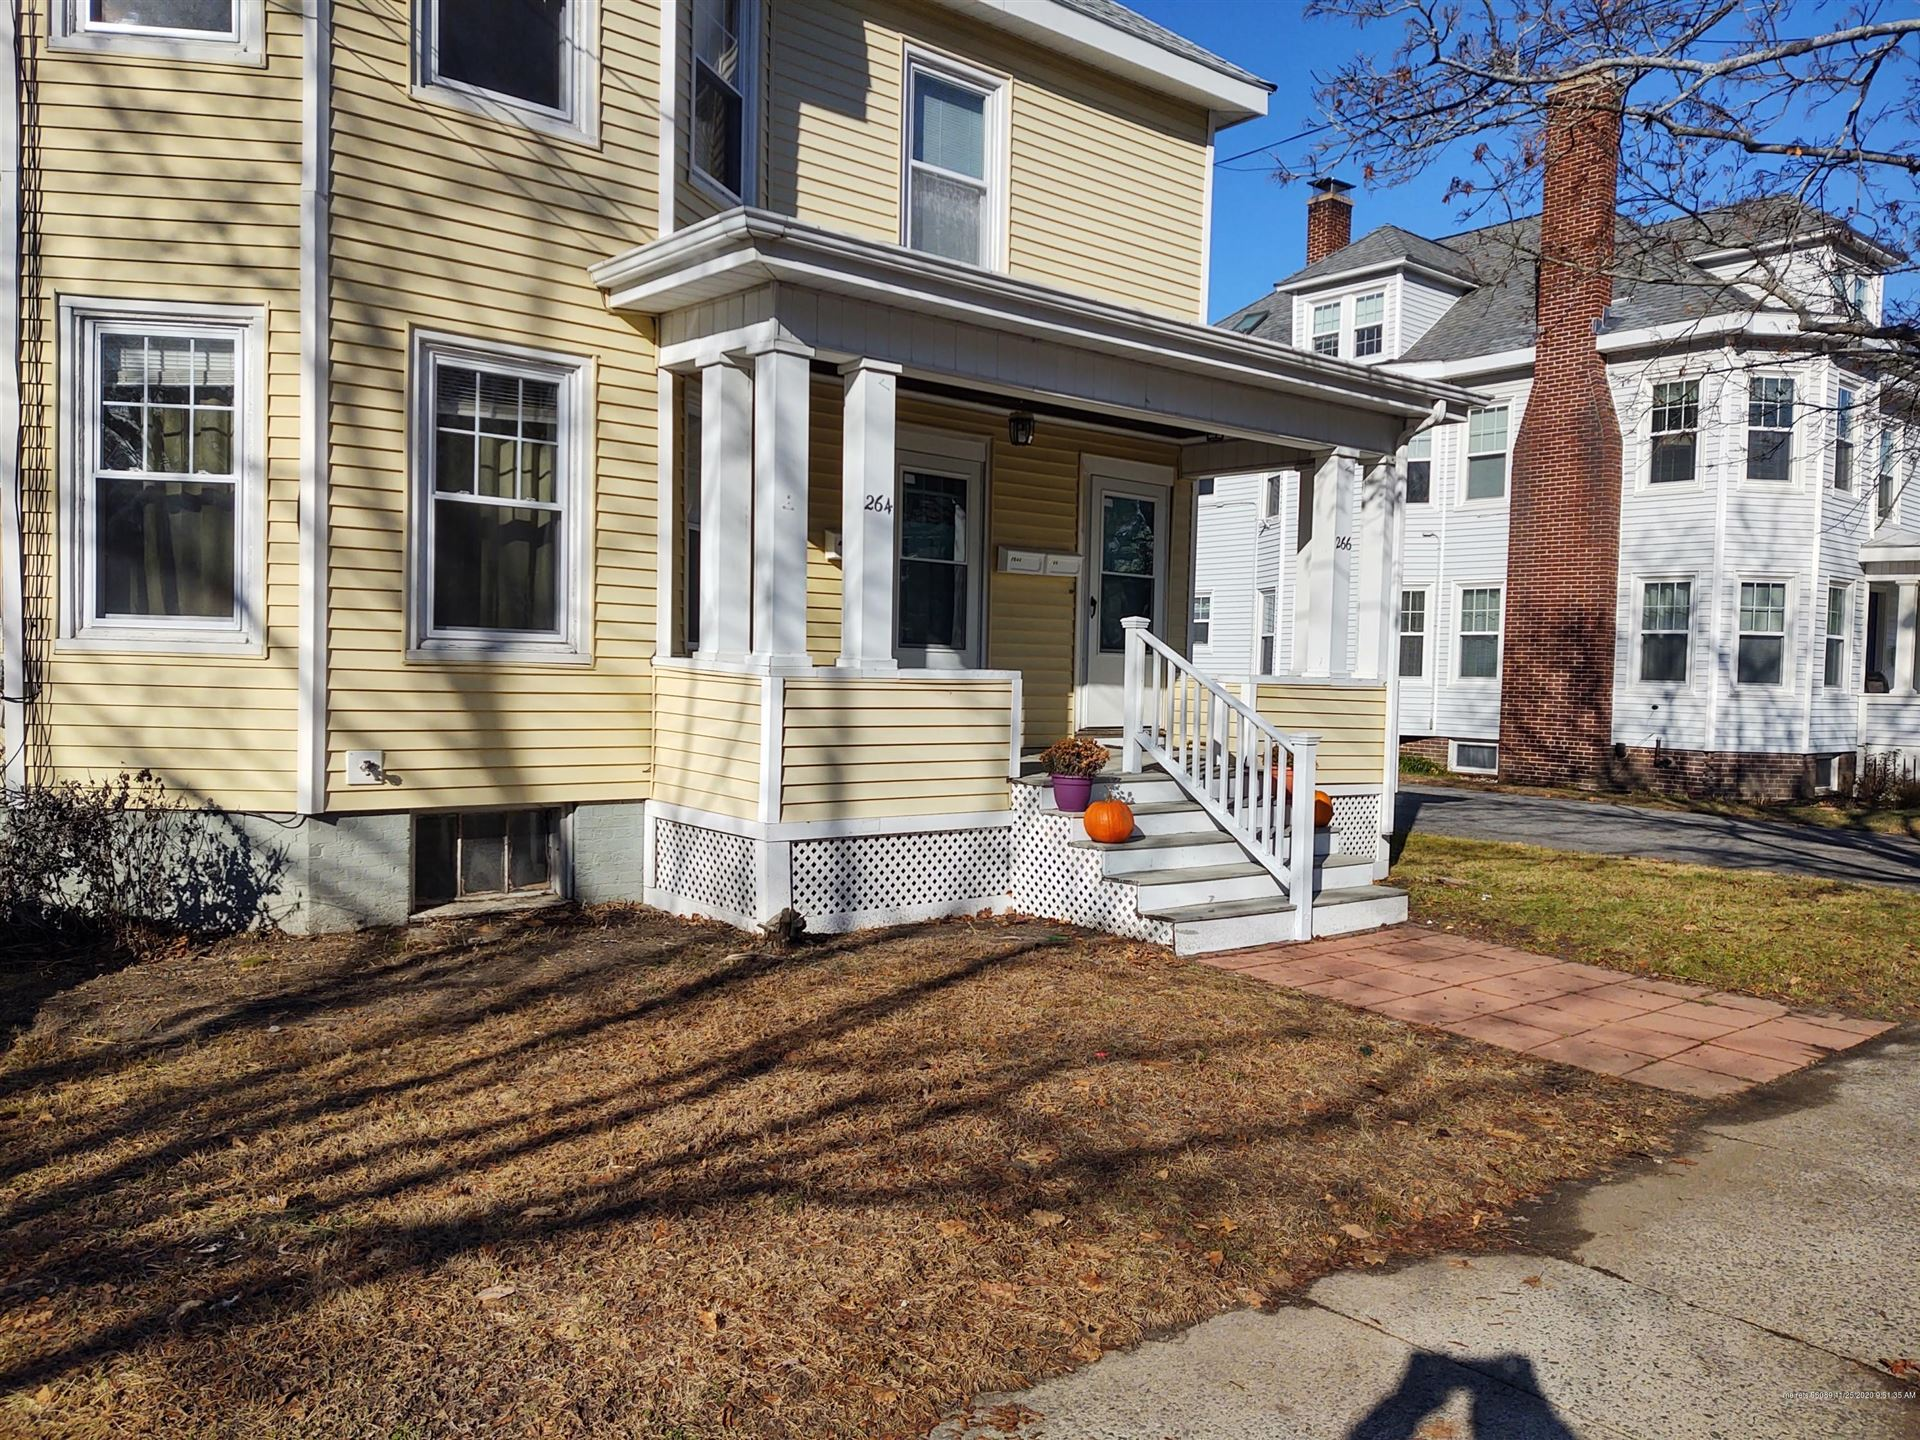 Photo of 264-266 Stevens Avenue, Portland, ME 04103 (MLS # 1476909)